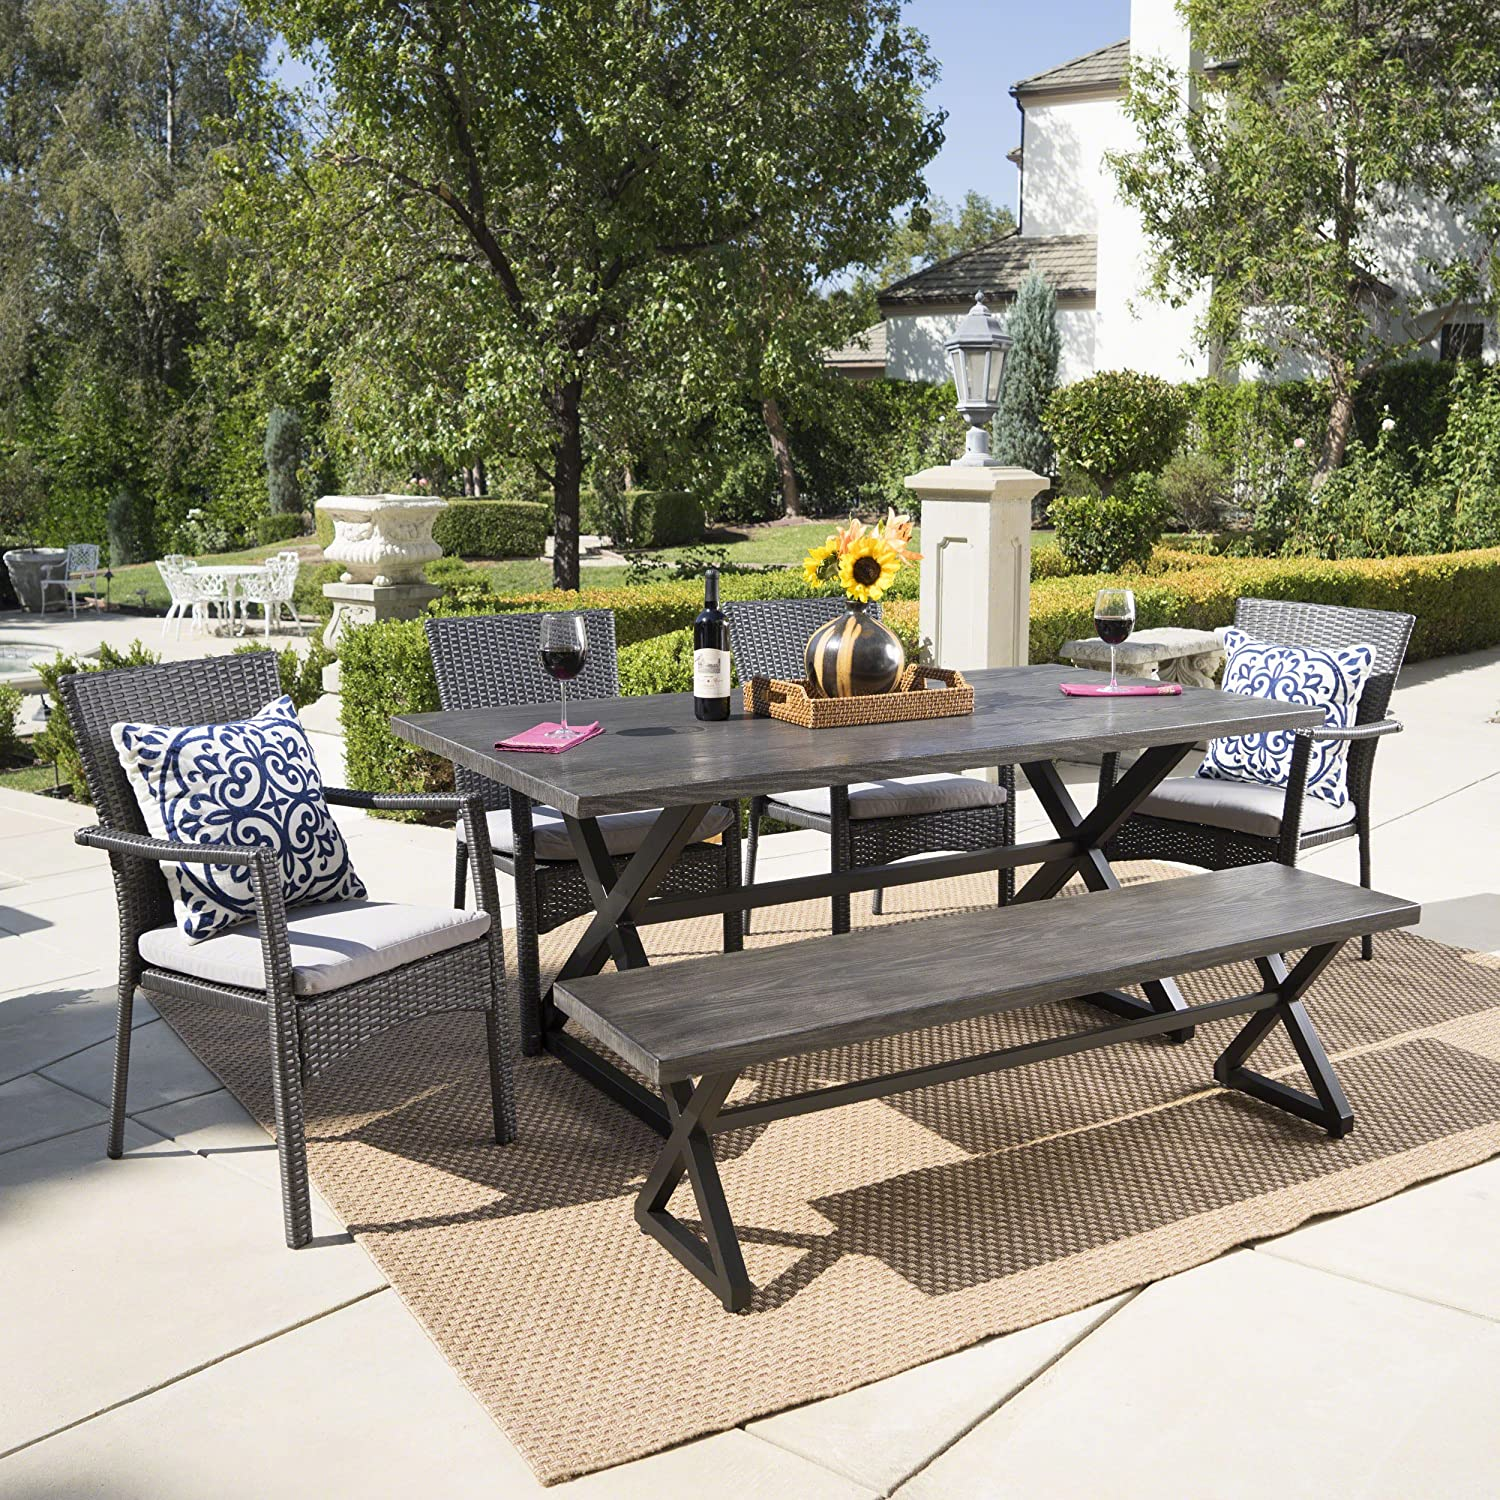 Christopher Knight Home Trina Outdoor 6 Piece Grey Aluminum Dining Set with Bench and Grey Wicker Dining Chairs with Grey Water Resistant Cushions